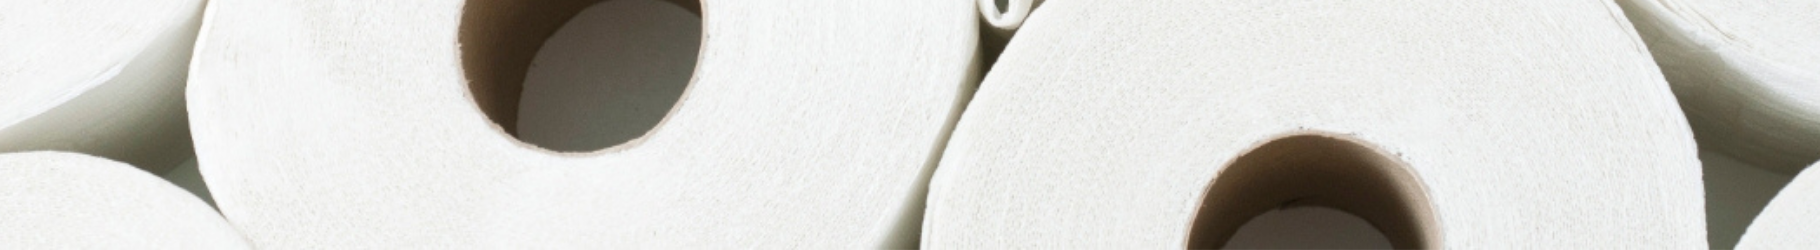 banner showing toilet paper